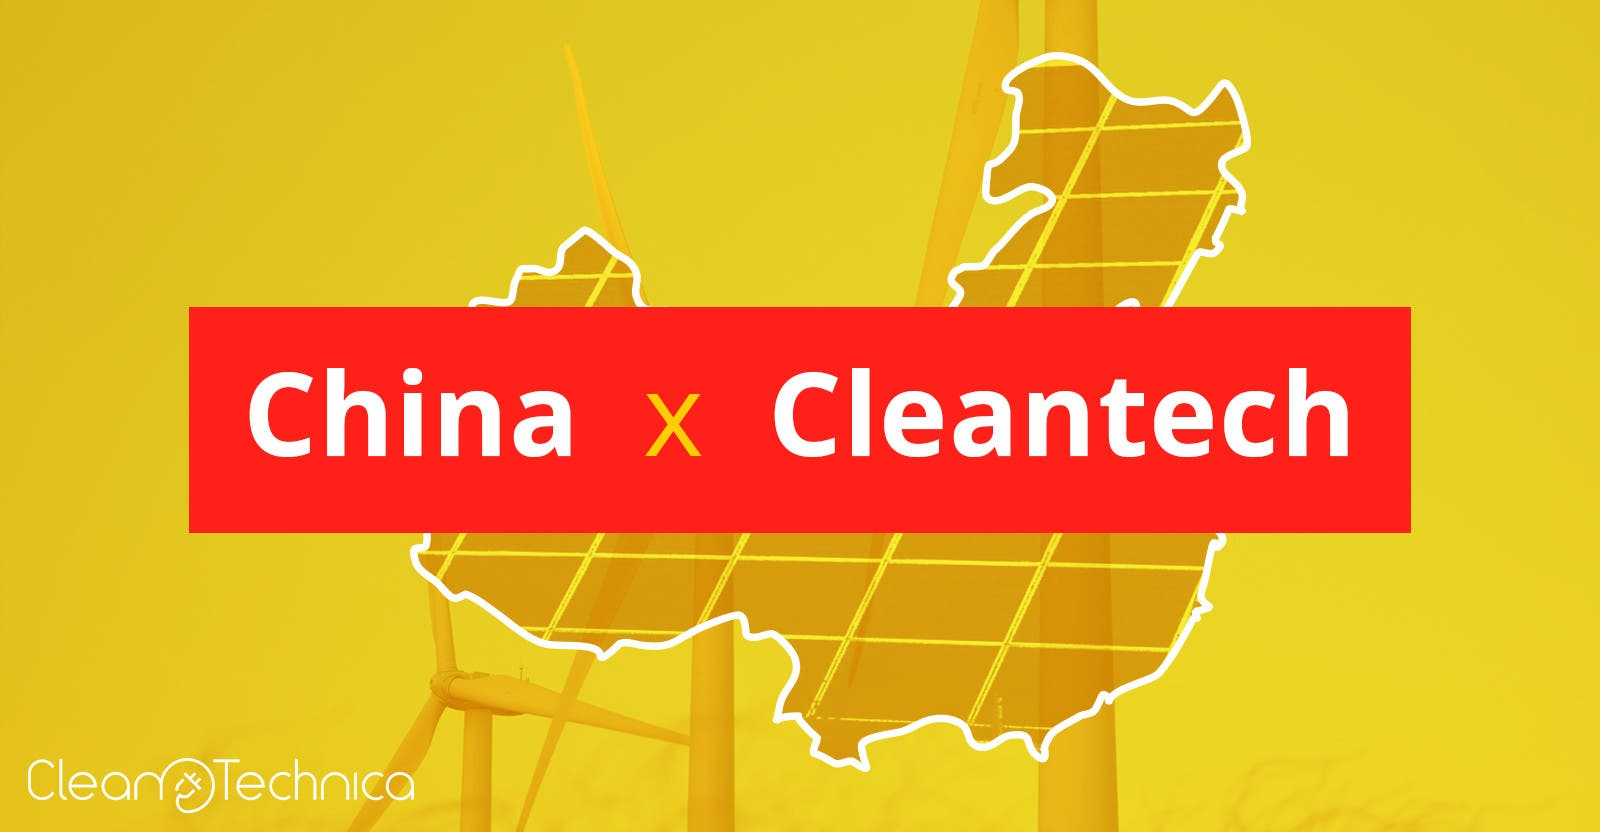 China x Cleantech